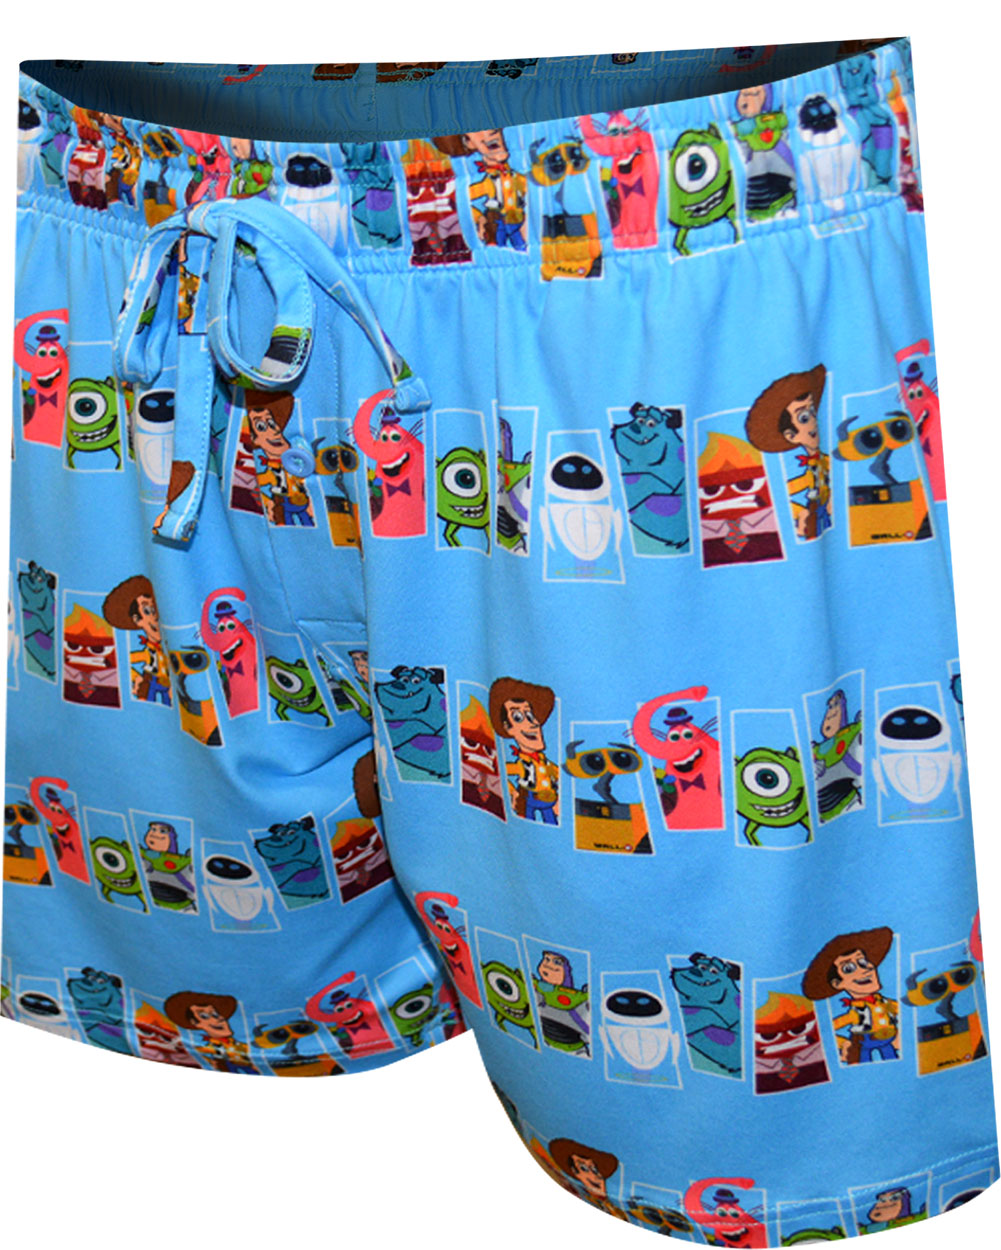 Image of Disney Pixar Characters Collage Lounge Shorts for men